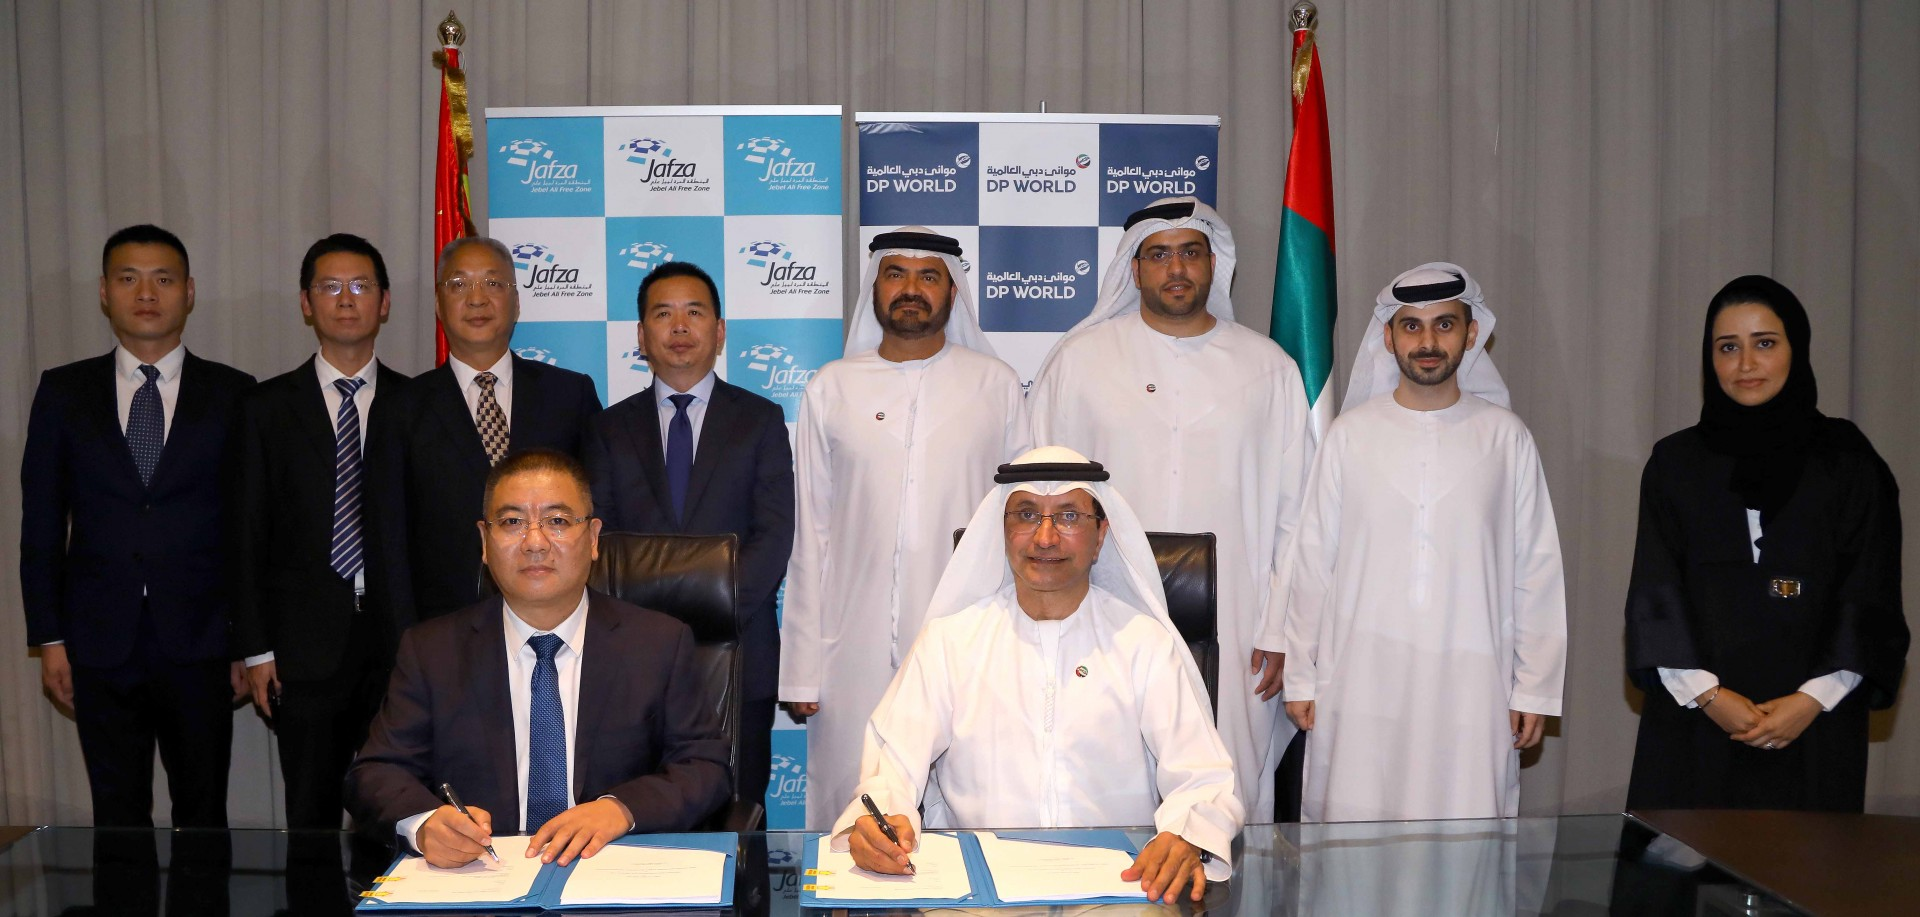 2019_08_26_DP WORLD PARTNERS WITH CCC TO DEVELOP 'TRADERS MARKET'_PR_IMAGE2